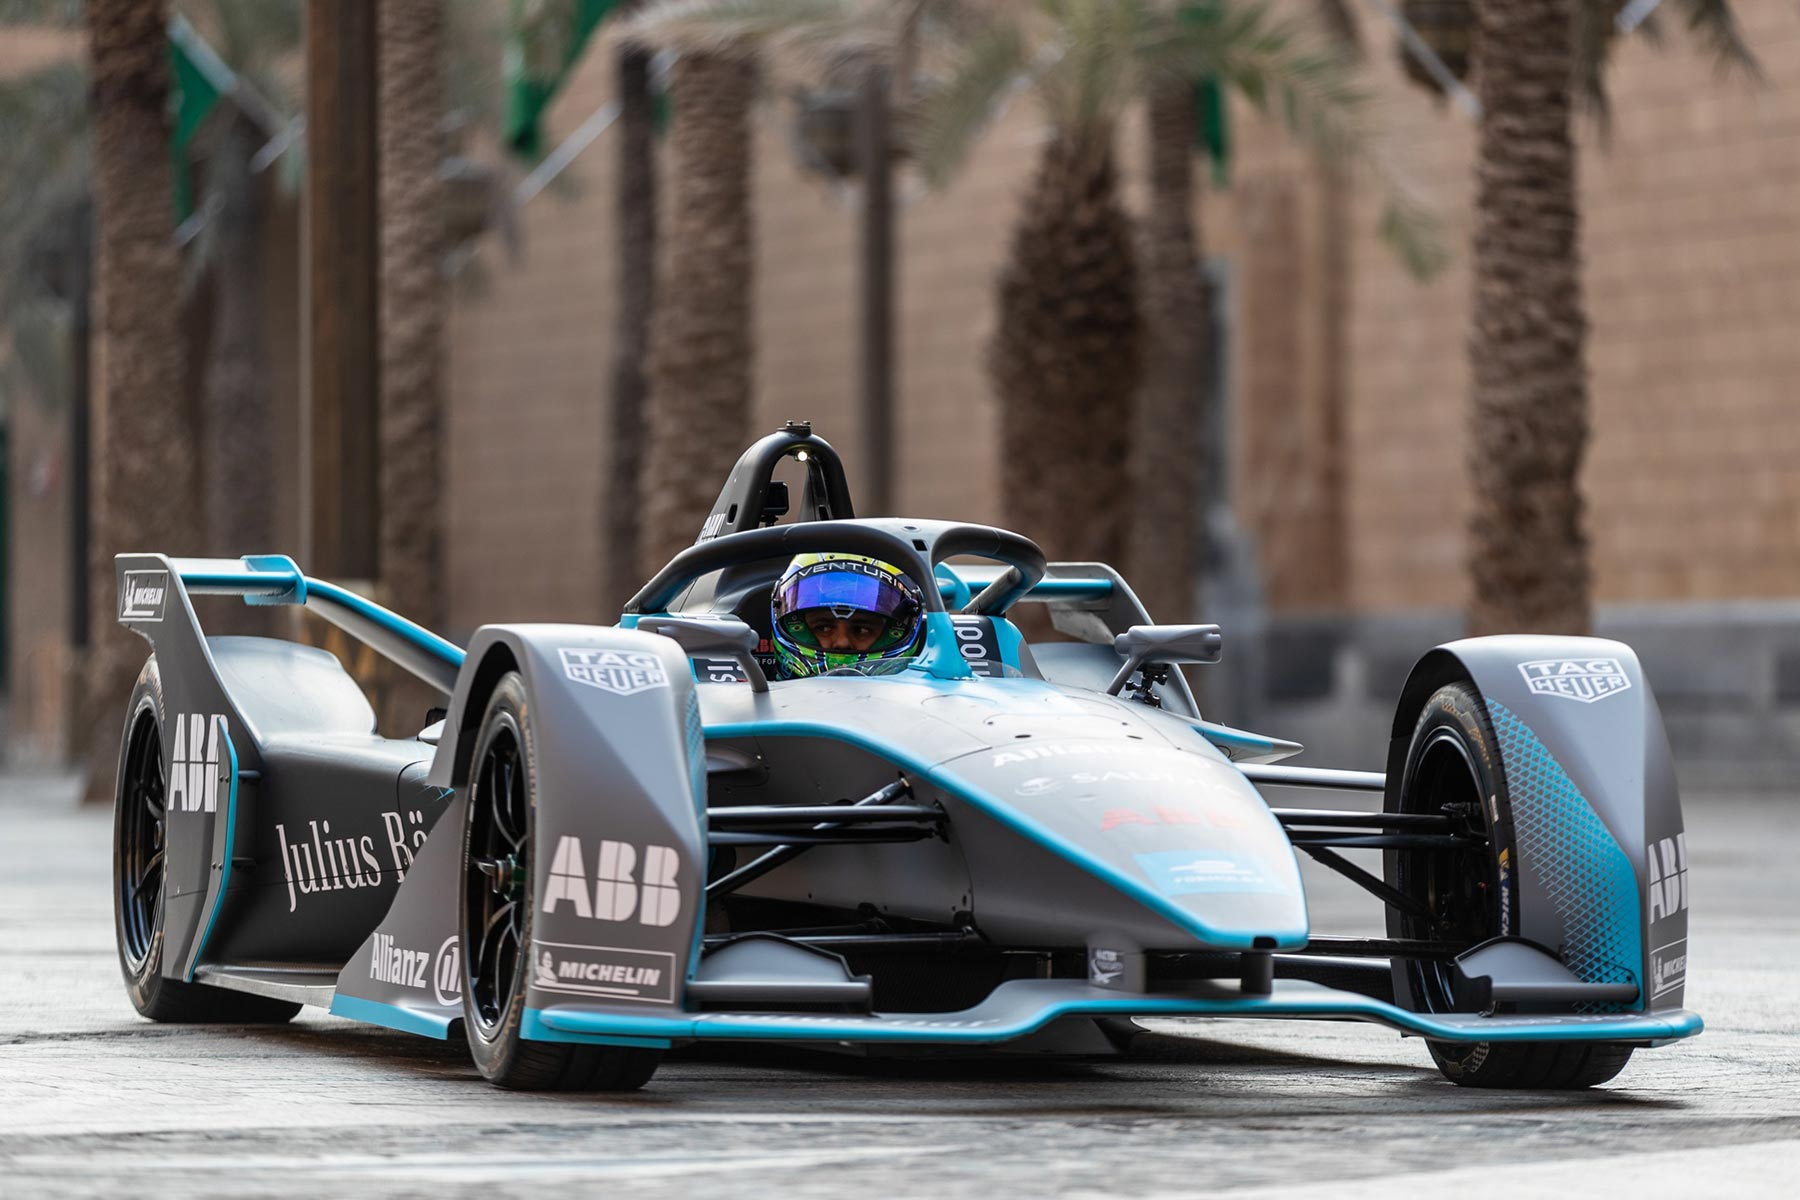 2018-2019 FIA Formula E Season Guide